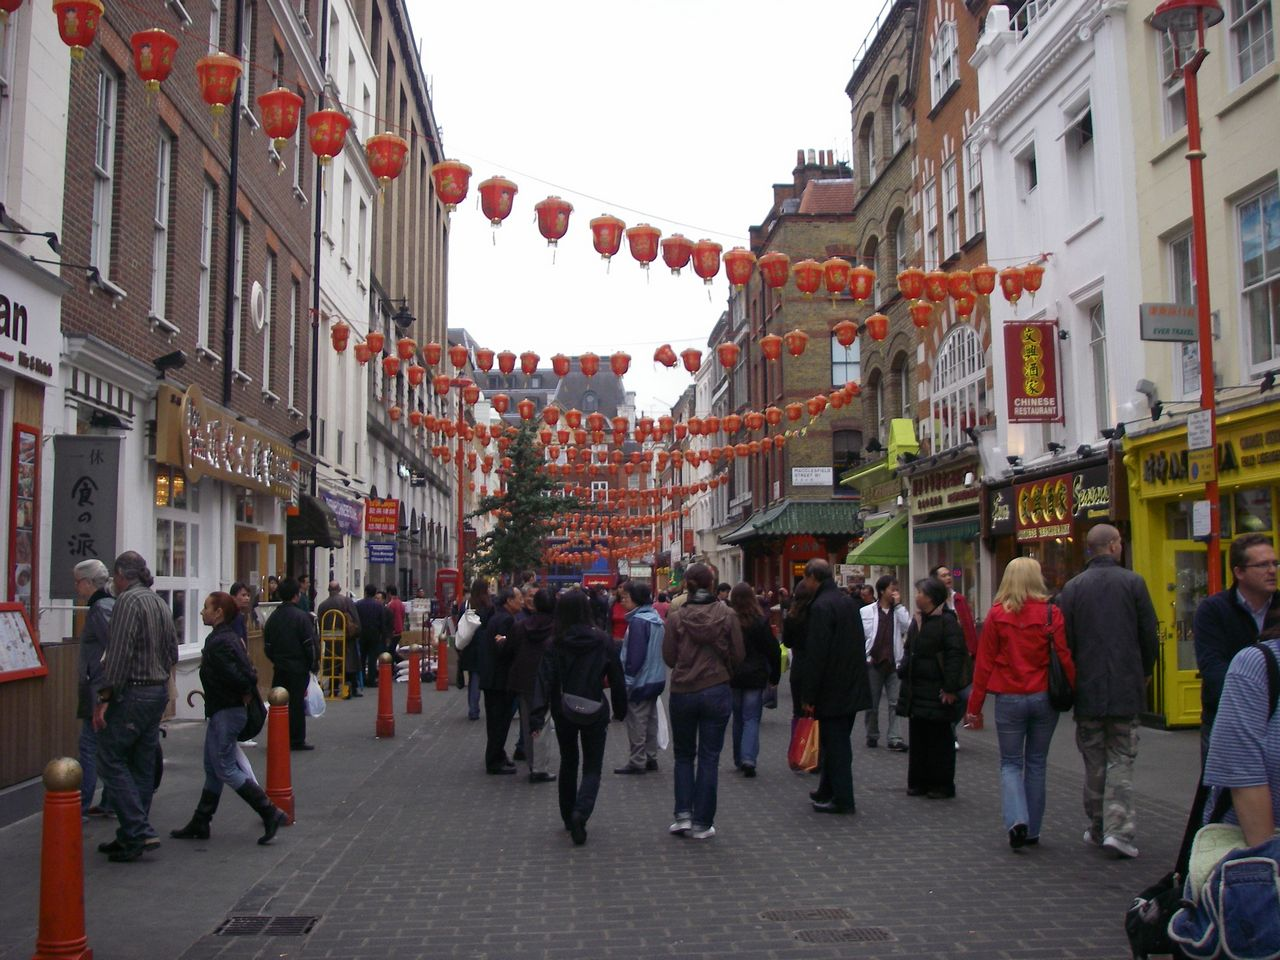 Where to stay in London Chinatown